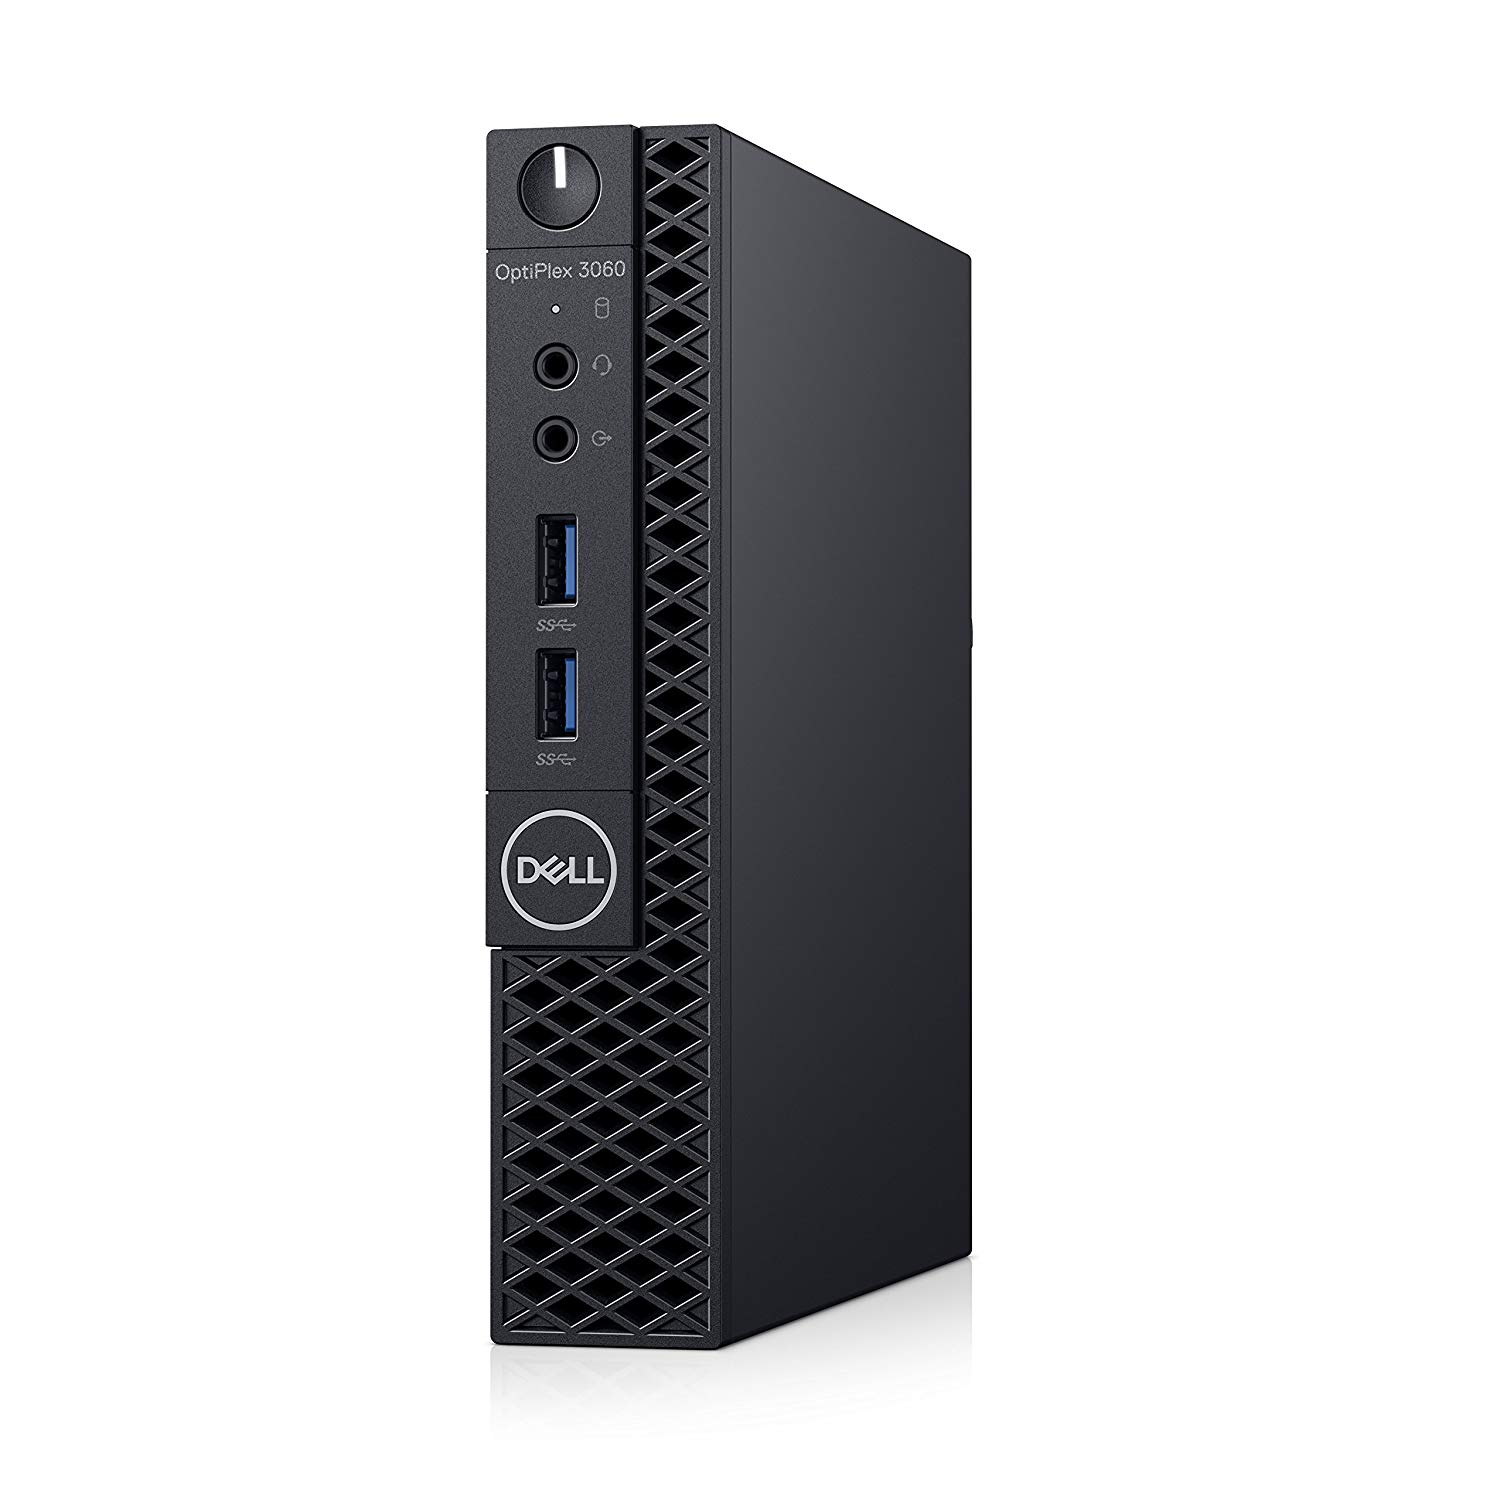 Dell Opti 3060 i5 8GB Black Mini PC